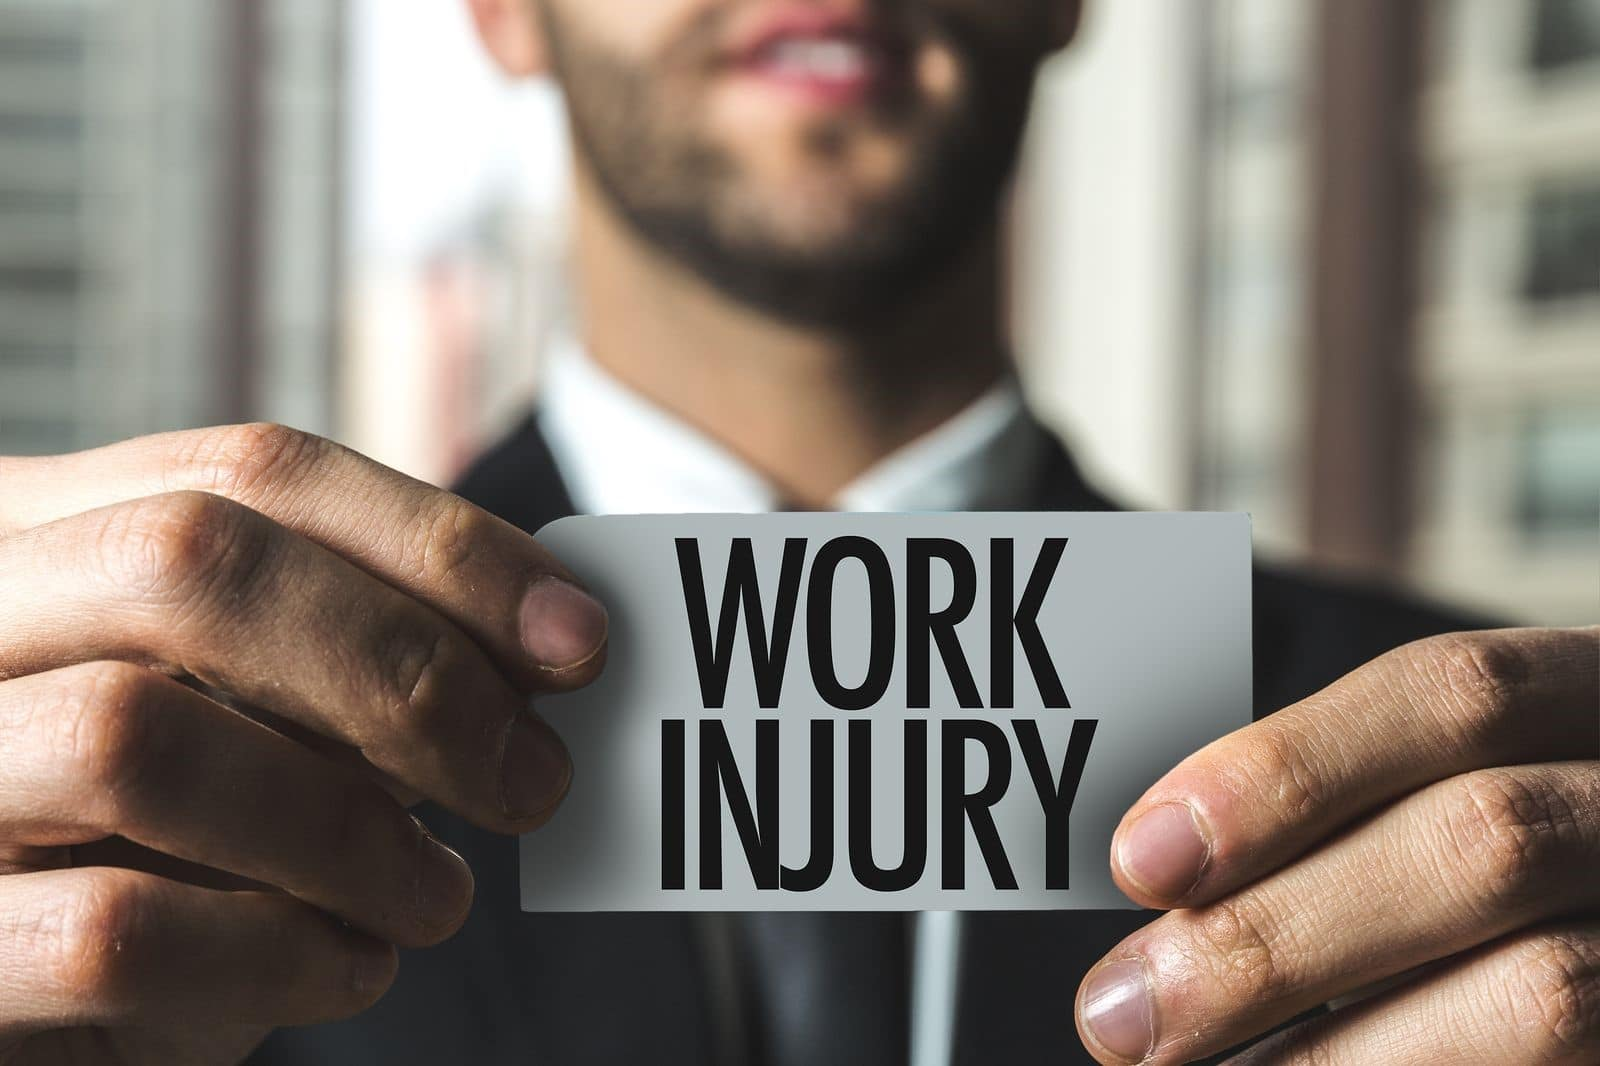 A Slip and Fall Lawyer Deals with Fatal and Non-Fatal Work Injuries